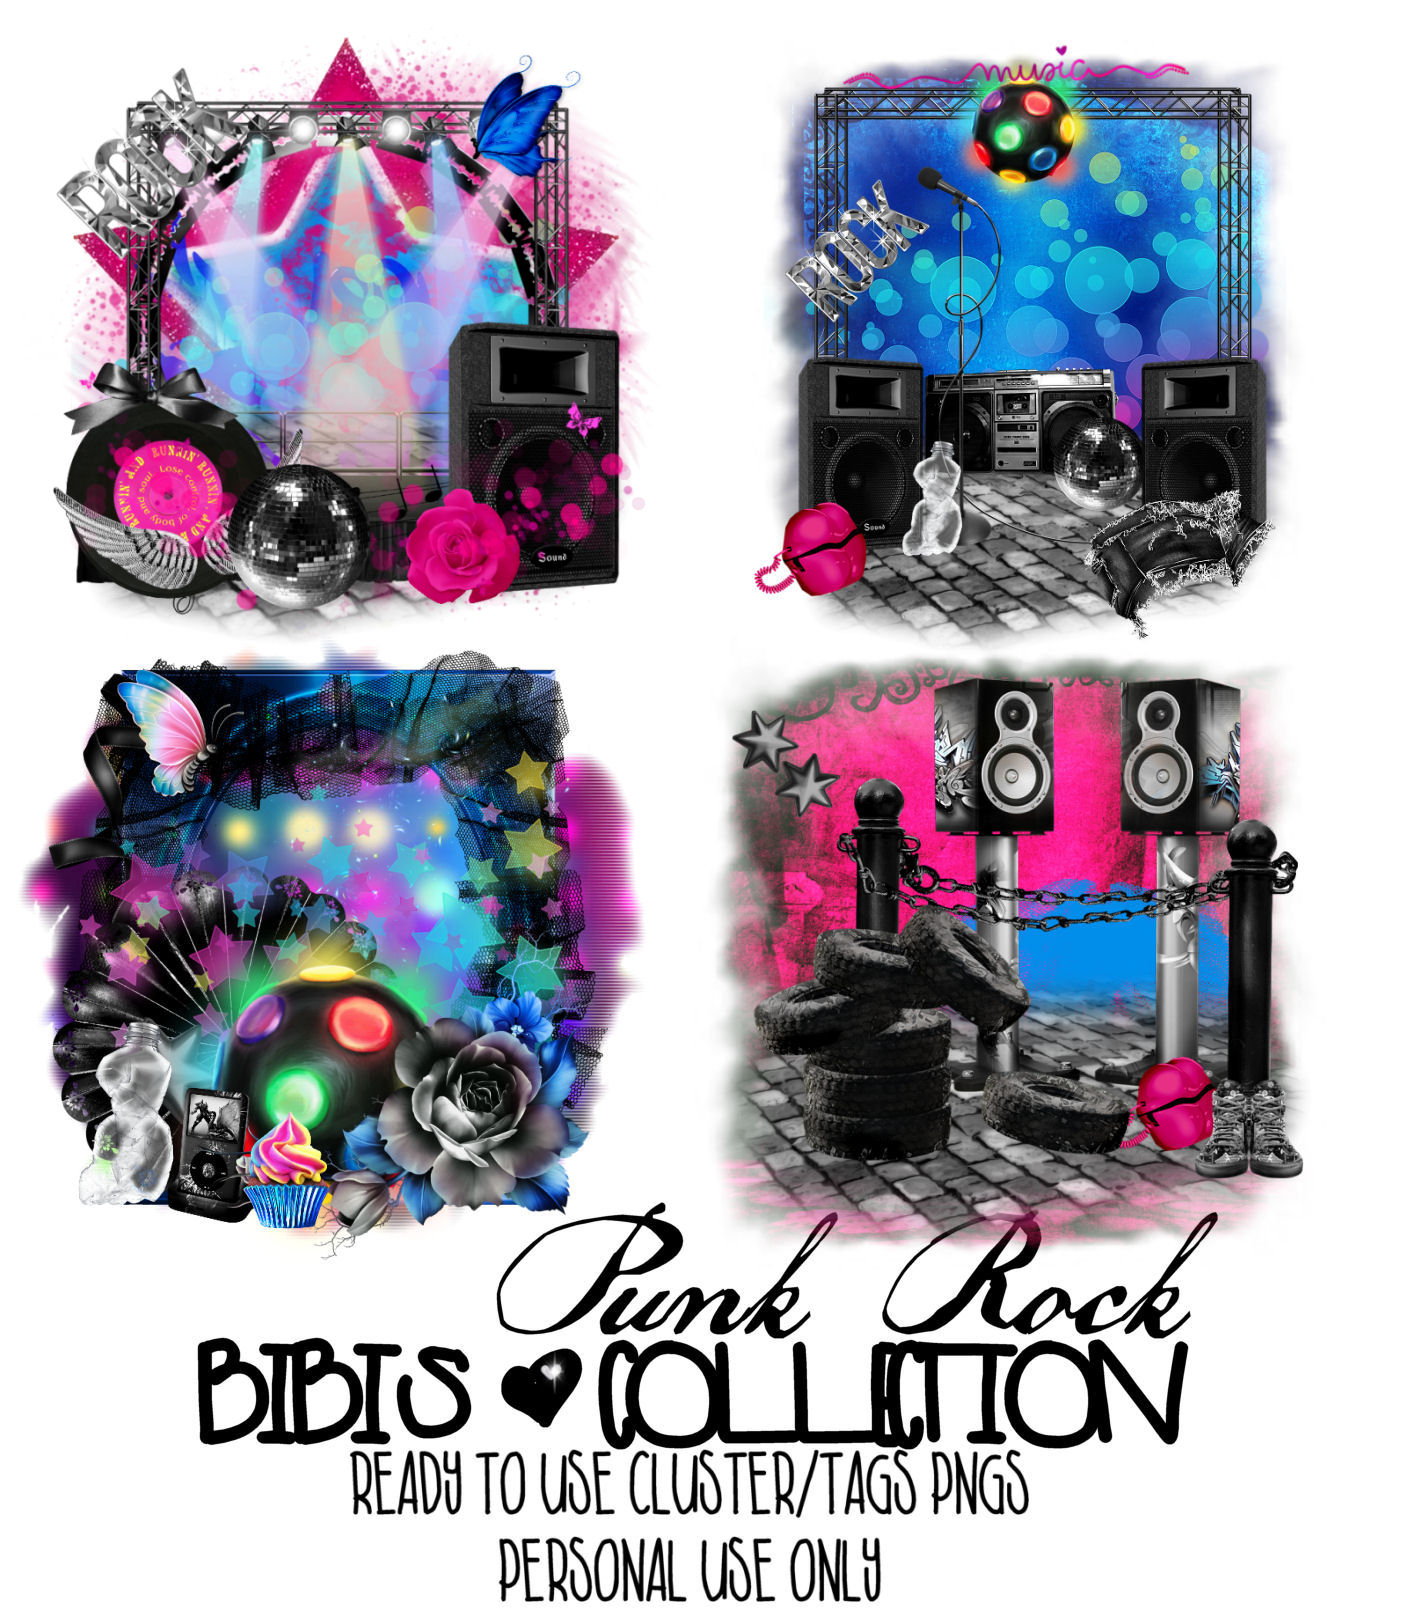 PUNK ROCK READY CLUSTER-TAGS